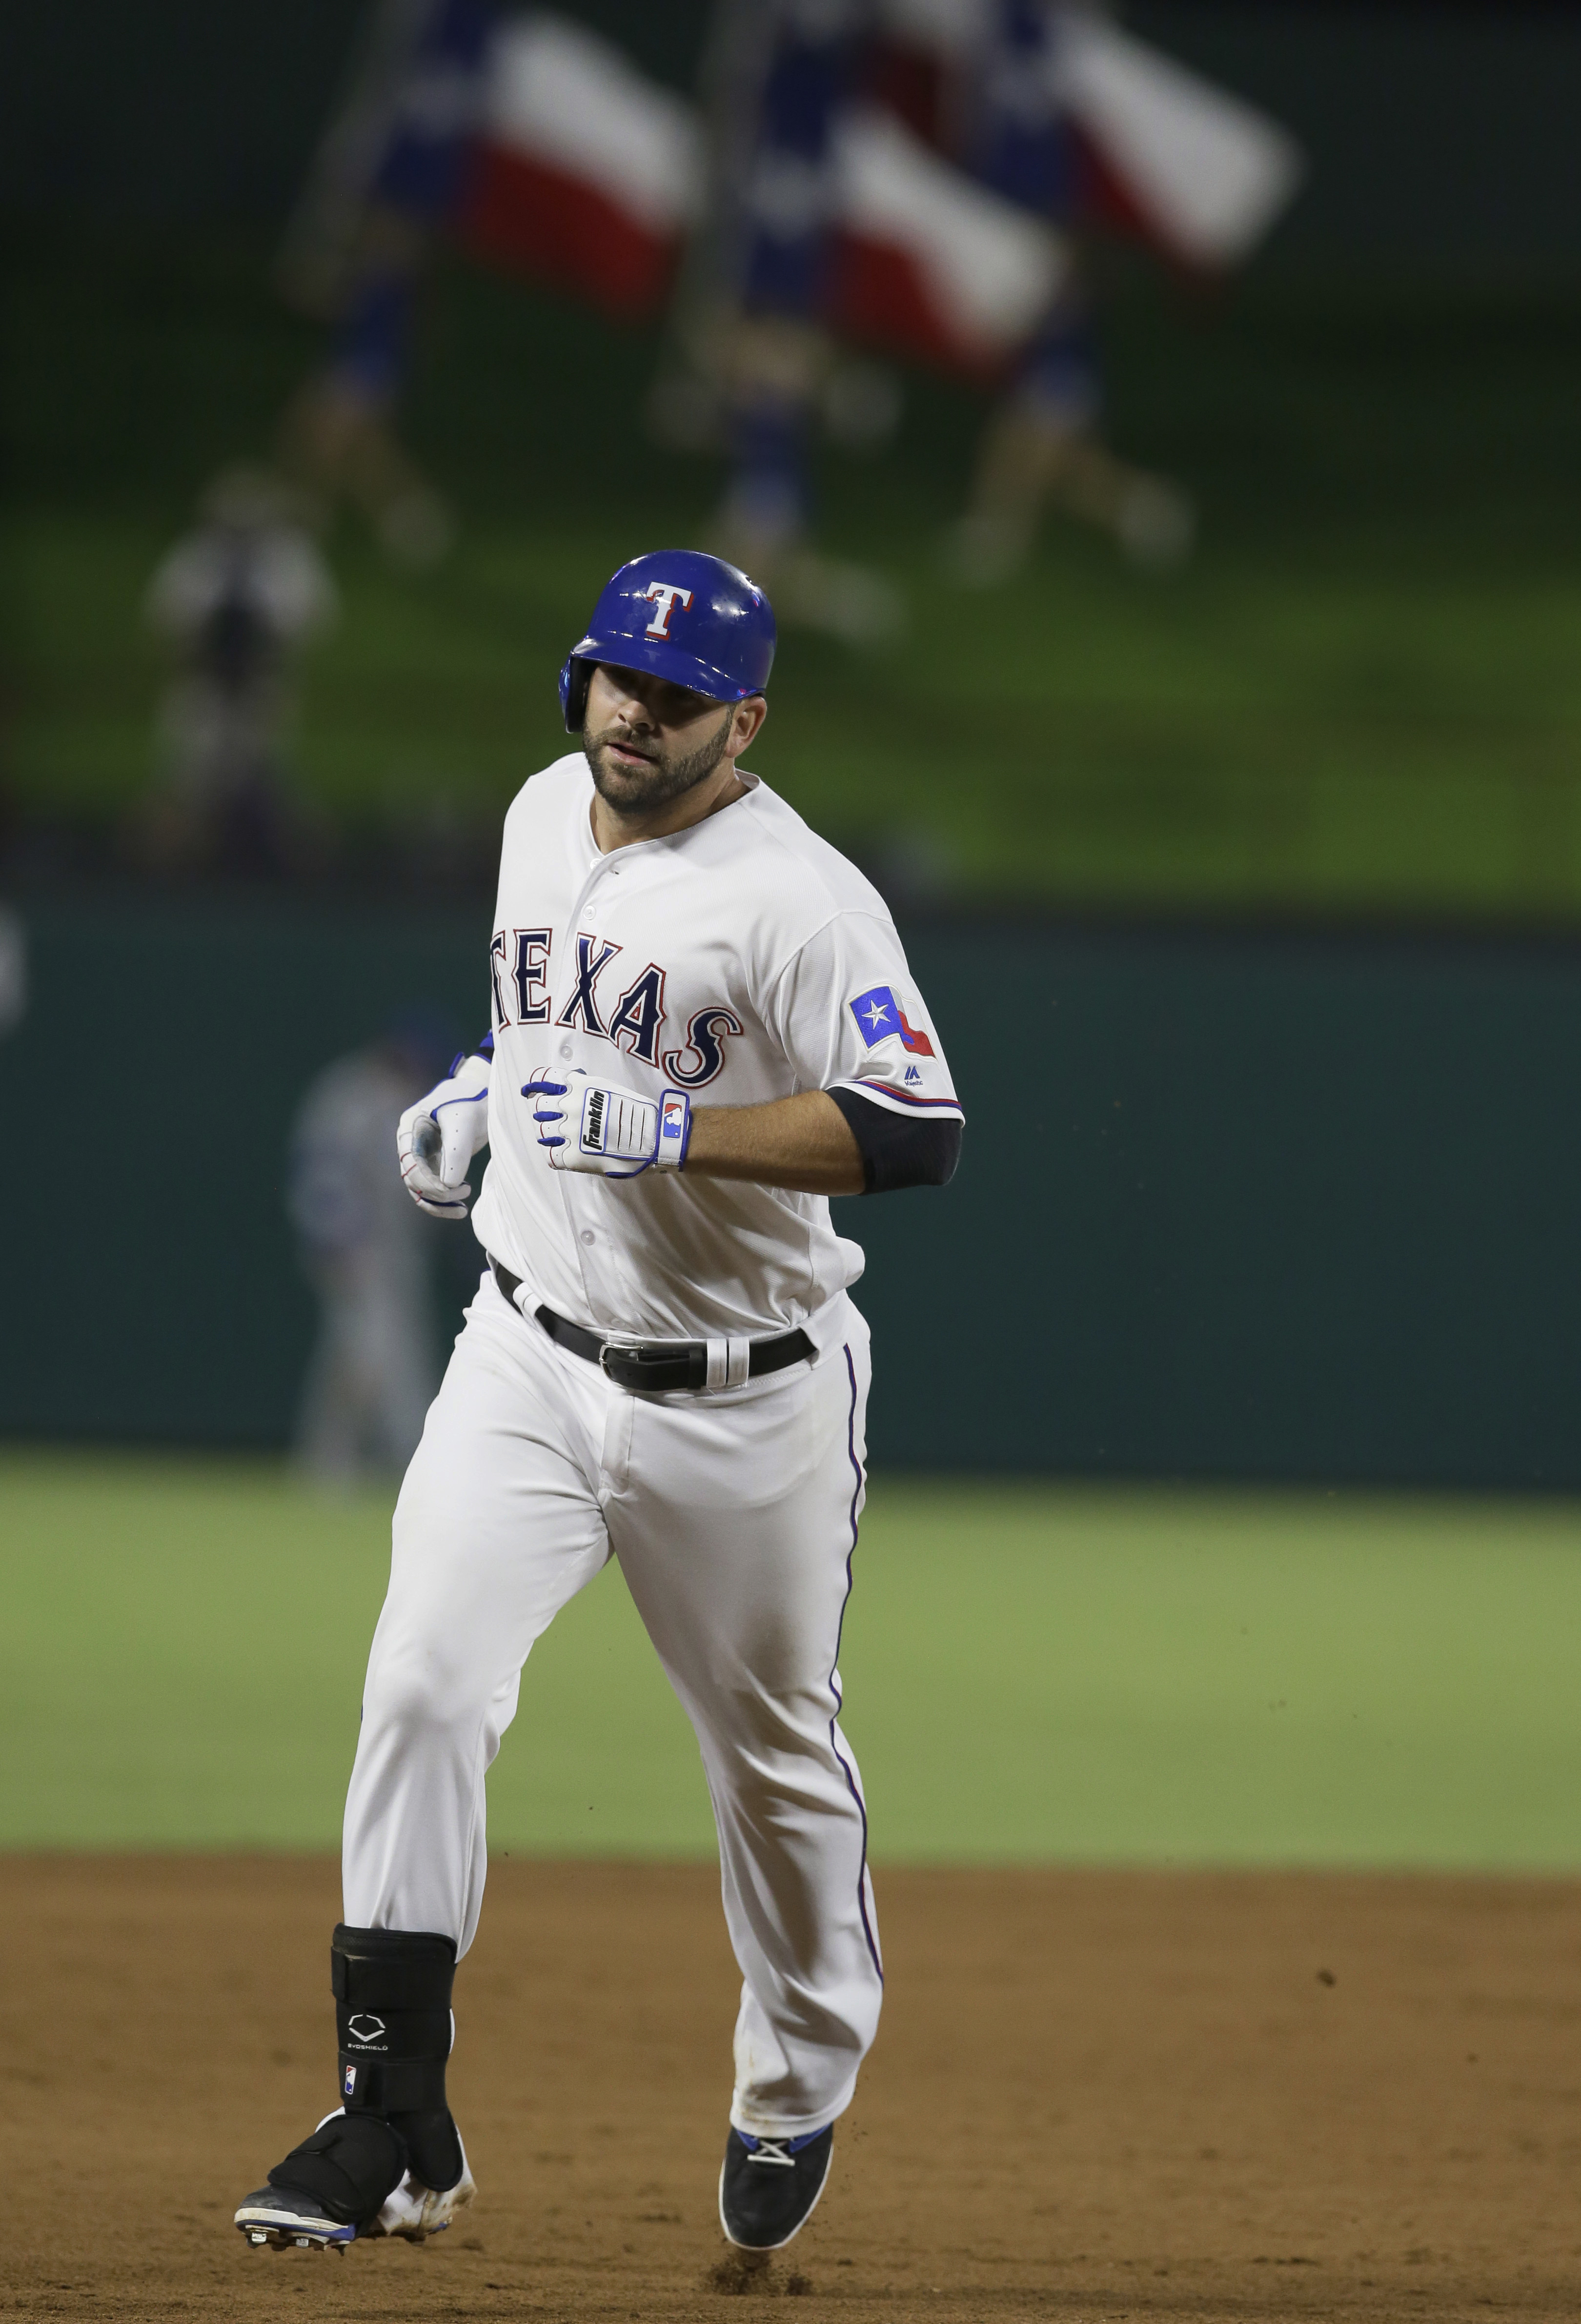 Texas Rangers' Mitch Moreland runs the base after his solo home run during the eighth inning of a baseball game against the Kansas City Royals in Arlington, Texas, Thursday, July 28, 2016. The Rangers won 3-2. (AP Photo/LM Otero)